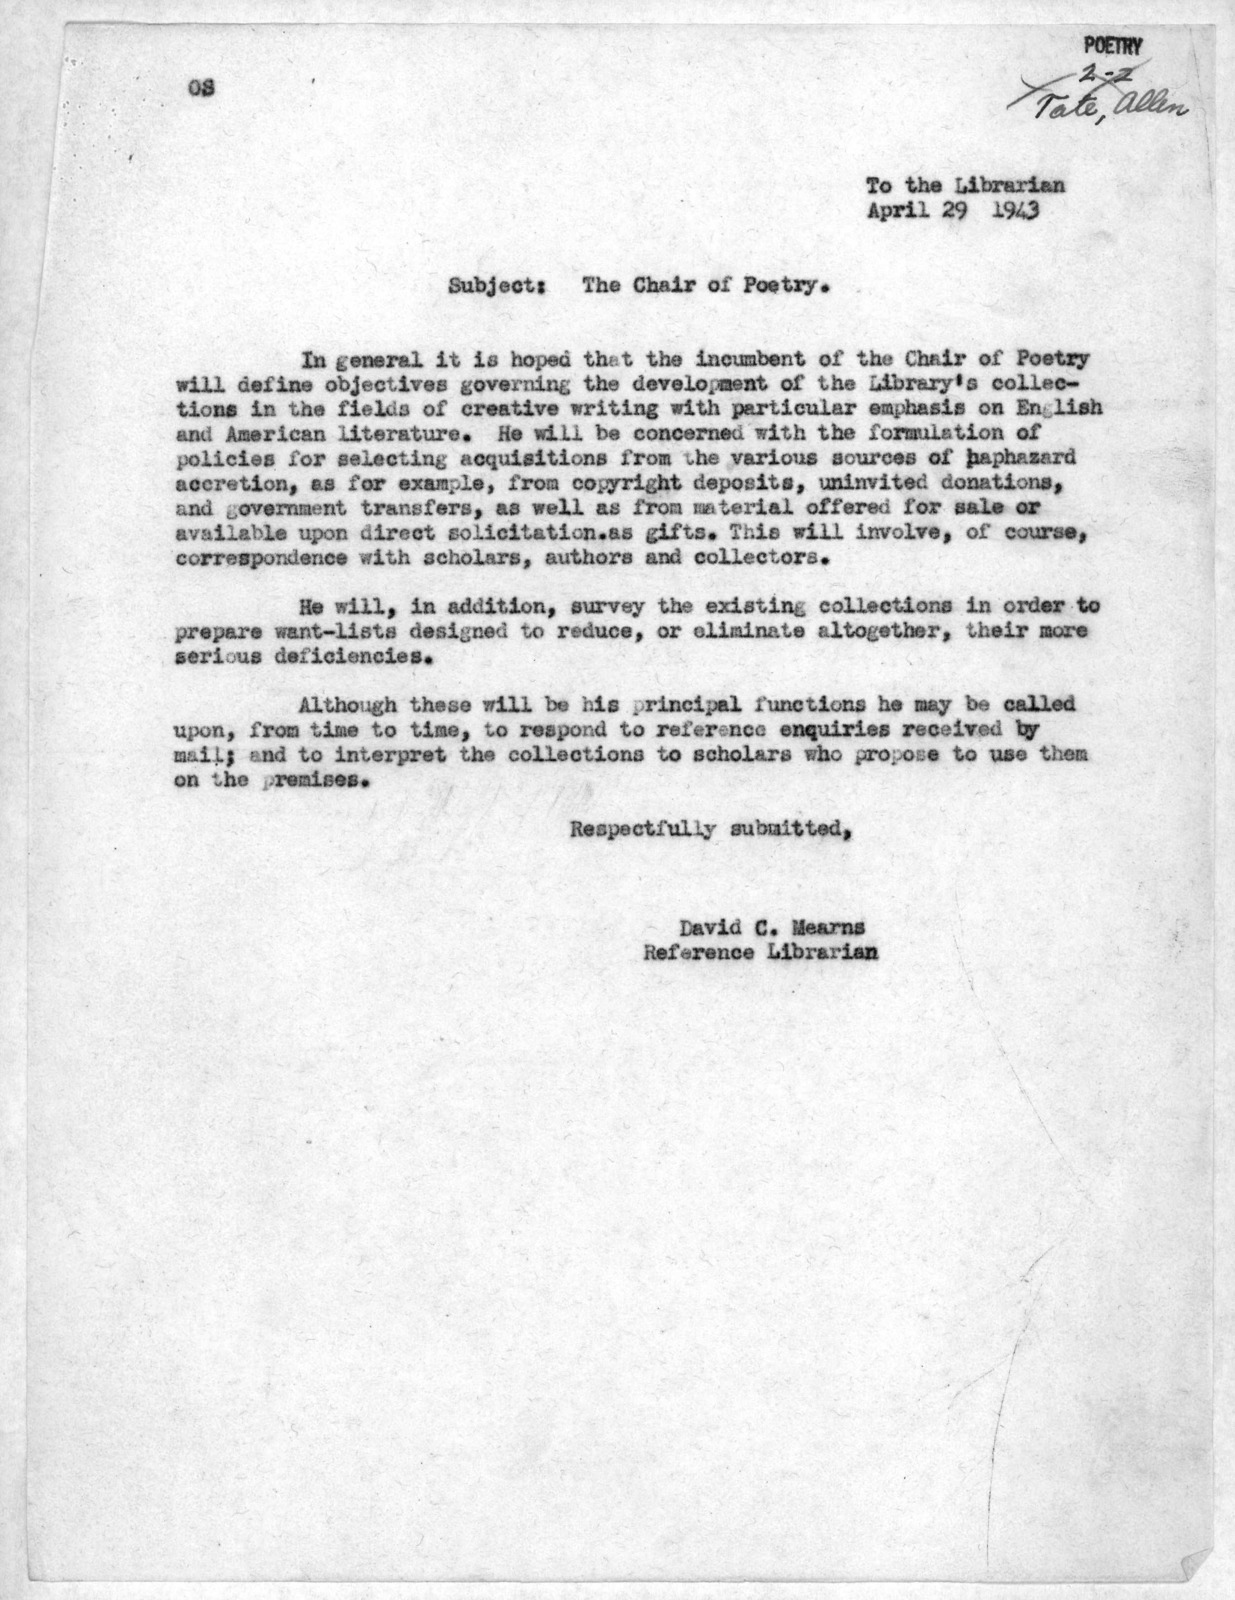 Letter from David C. Mearns to Archibald MacLeish, April 29, 1943